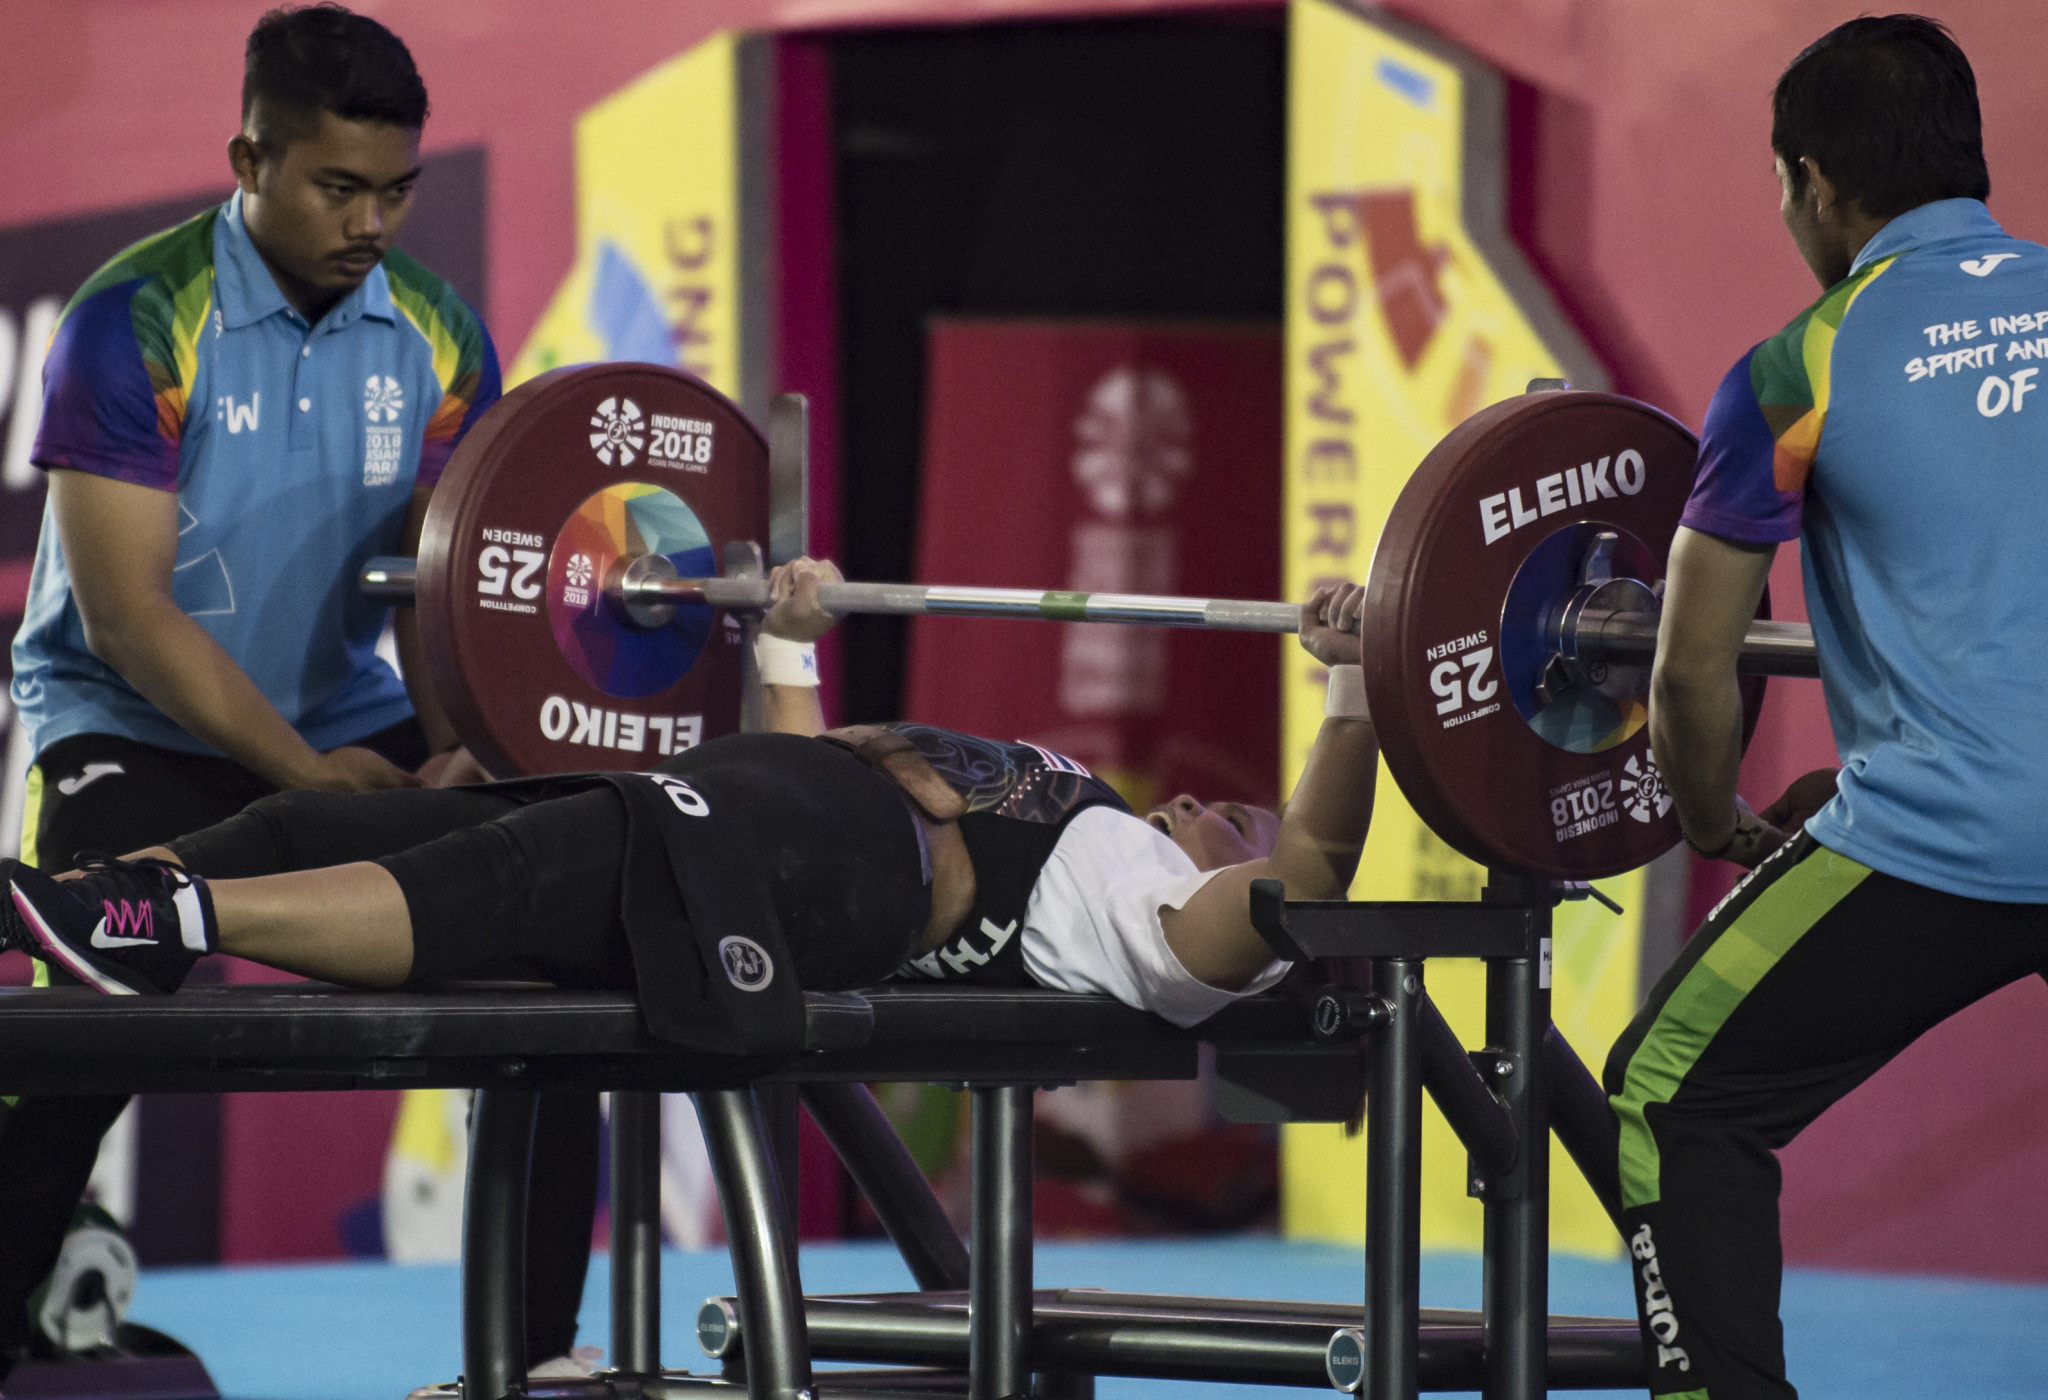 Thailand to stage World Para Powerlifting World Cup for first time